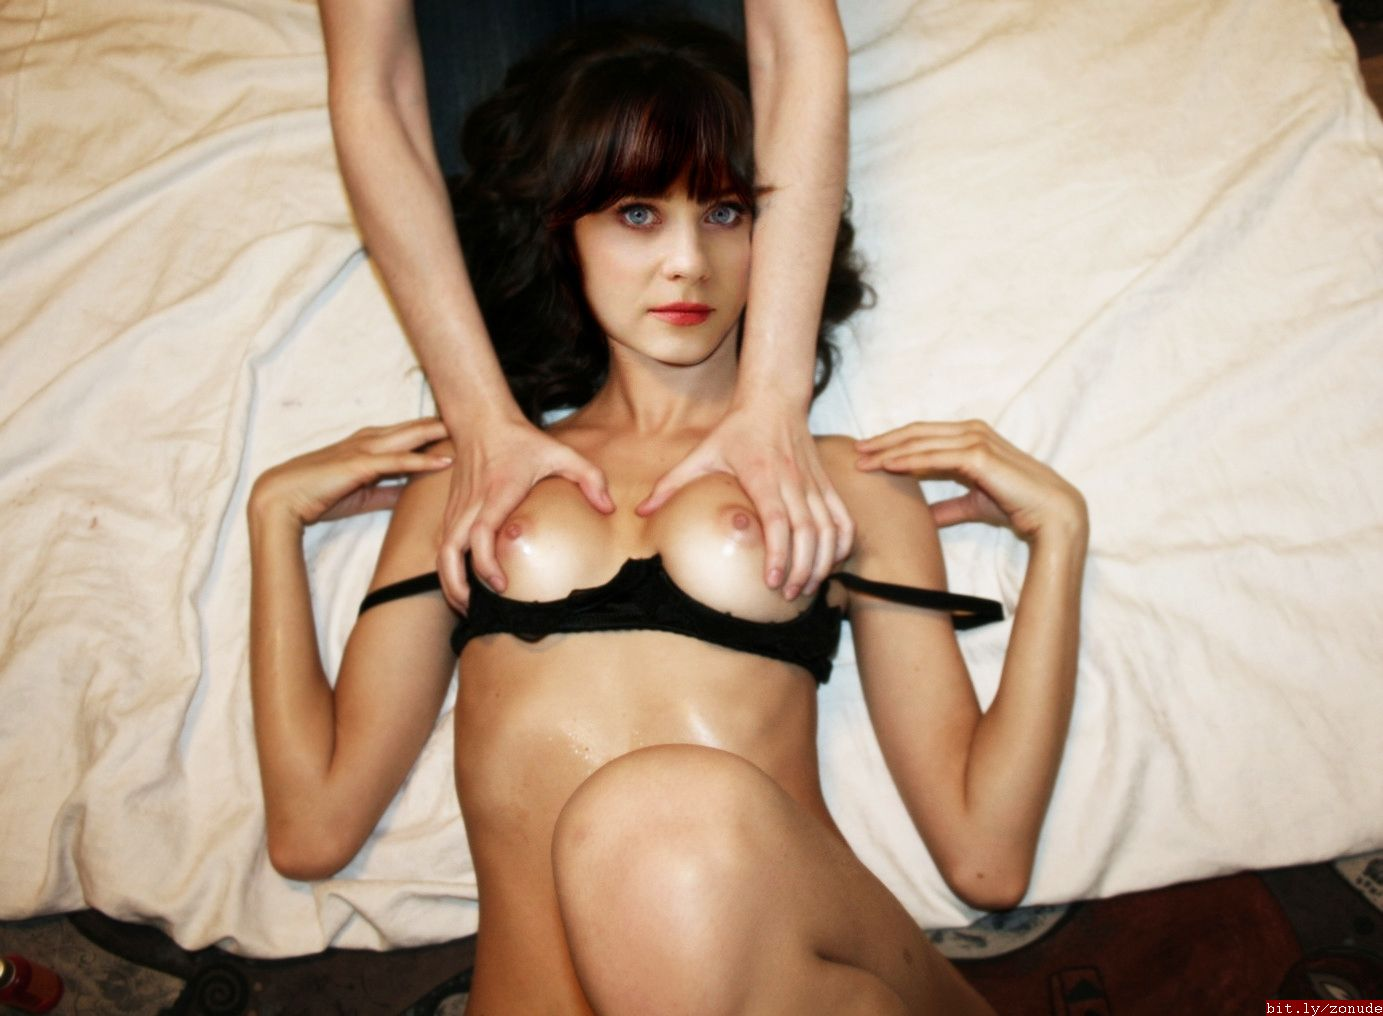 zooey deschanel nudes you have to see now pics